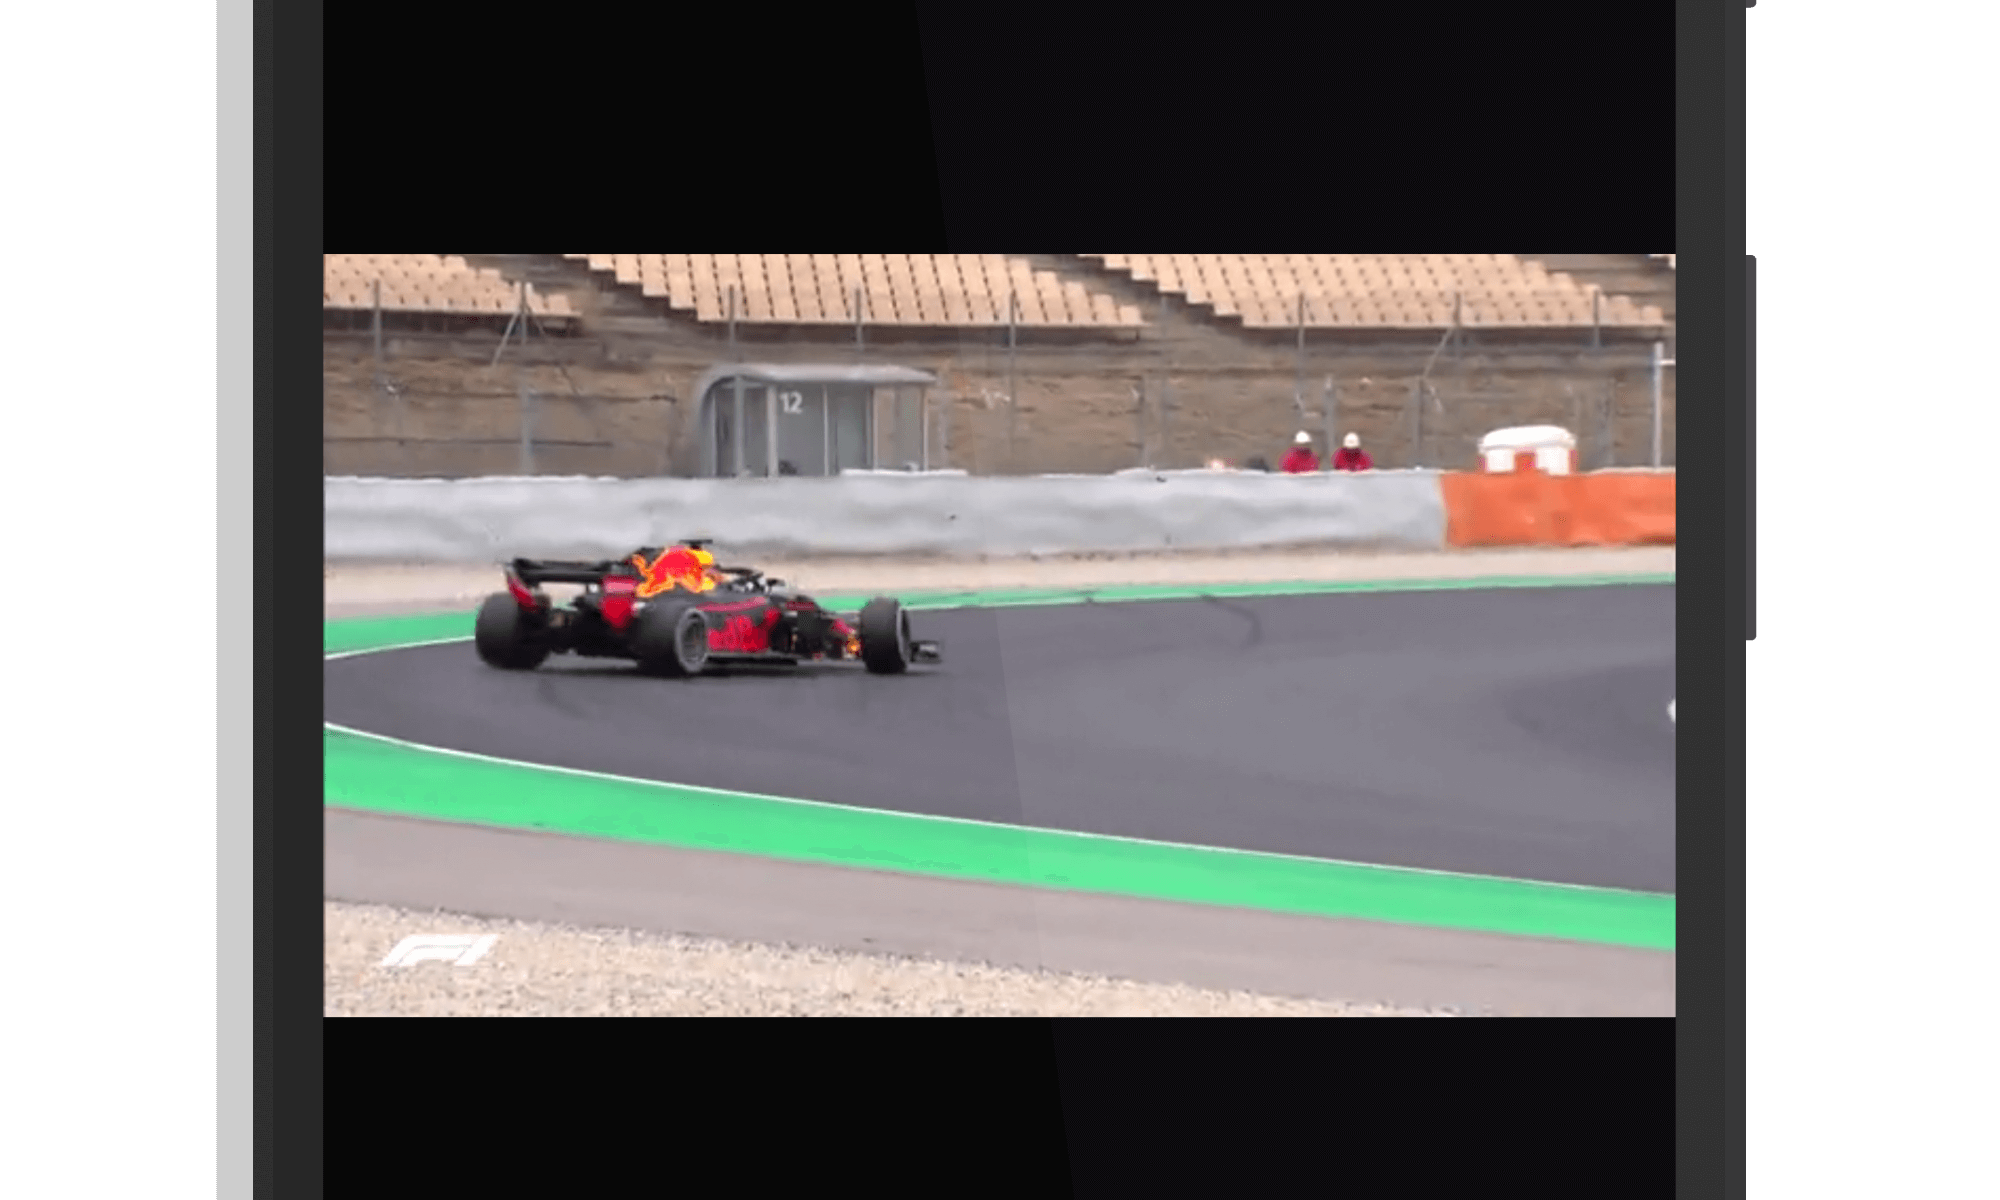 Video in The Formula 1 App